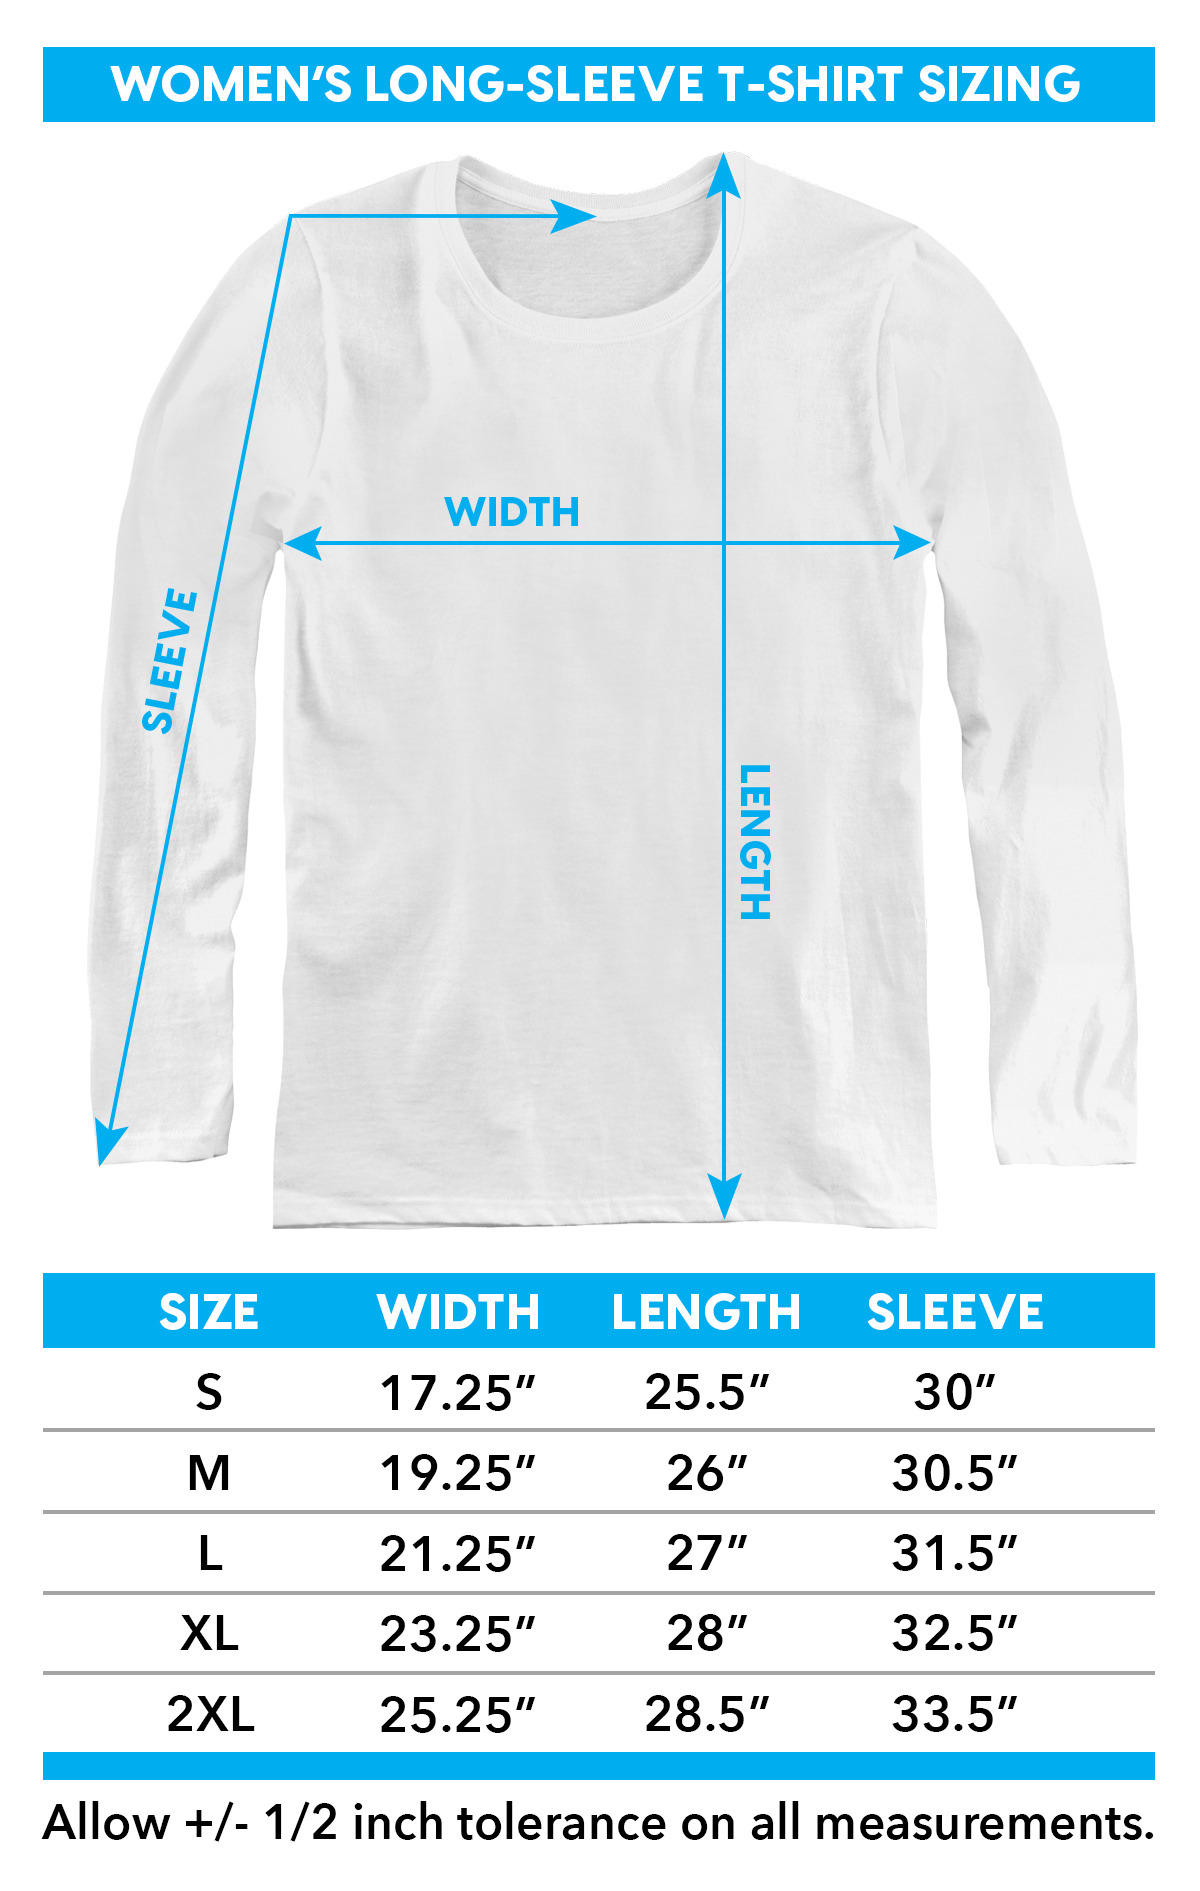 Size Chart for The Nun Women's Long Sleeve T-Shirt - Lantern TRV-WBM966-WL